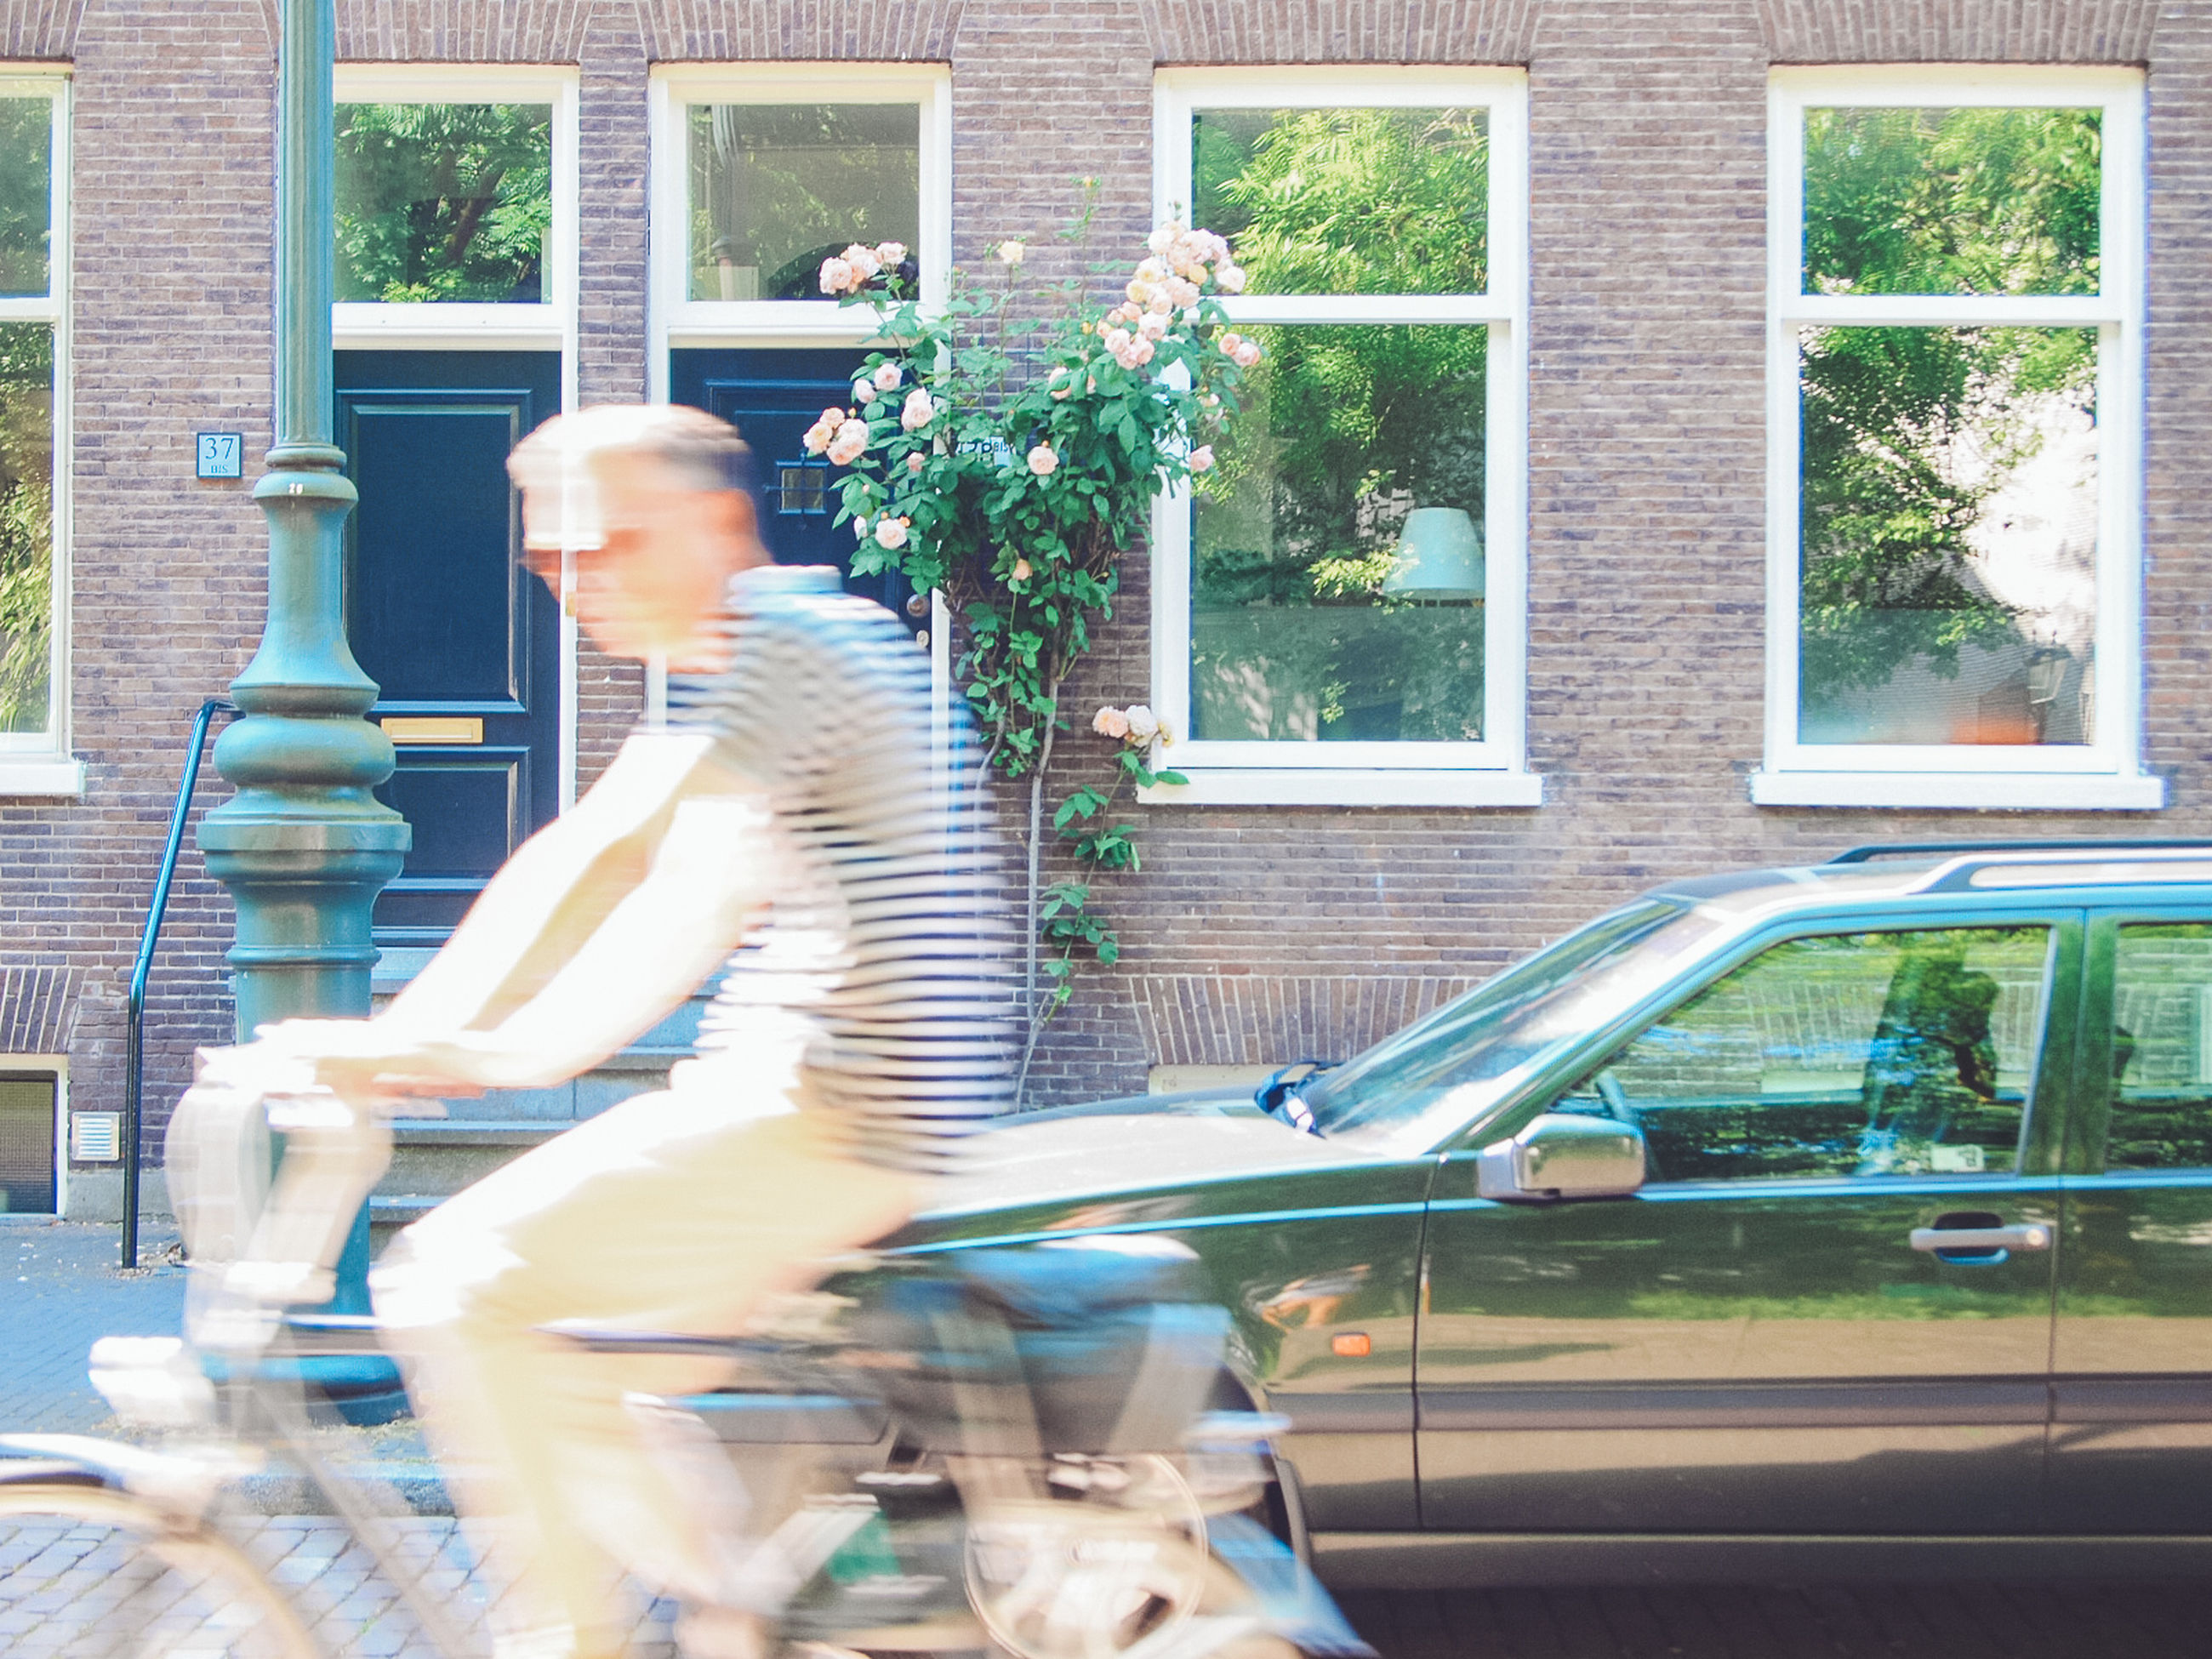 architecture, real people, one person, building exterior, lifestyles, built structure, men, leisure activity, bicycle, blurred motion, building, day, motion, window, transportation, ride, sport, outdoors, males, riding